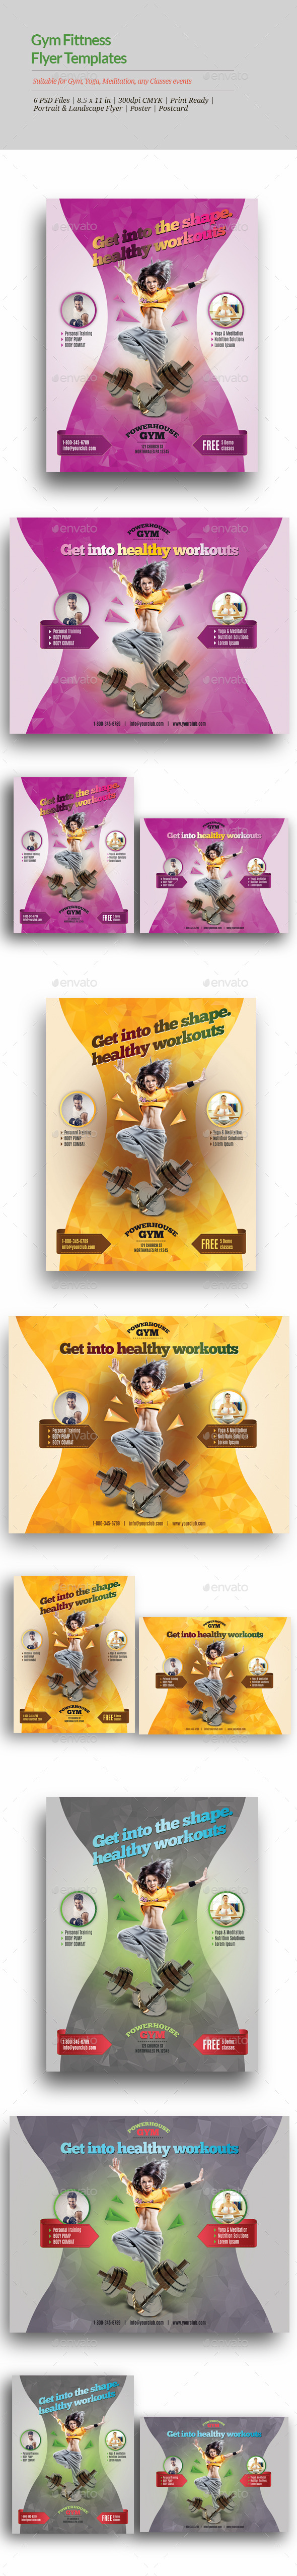 GraphicRiver Gym Fitness Flyer Templates 11405565